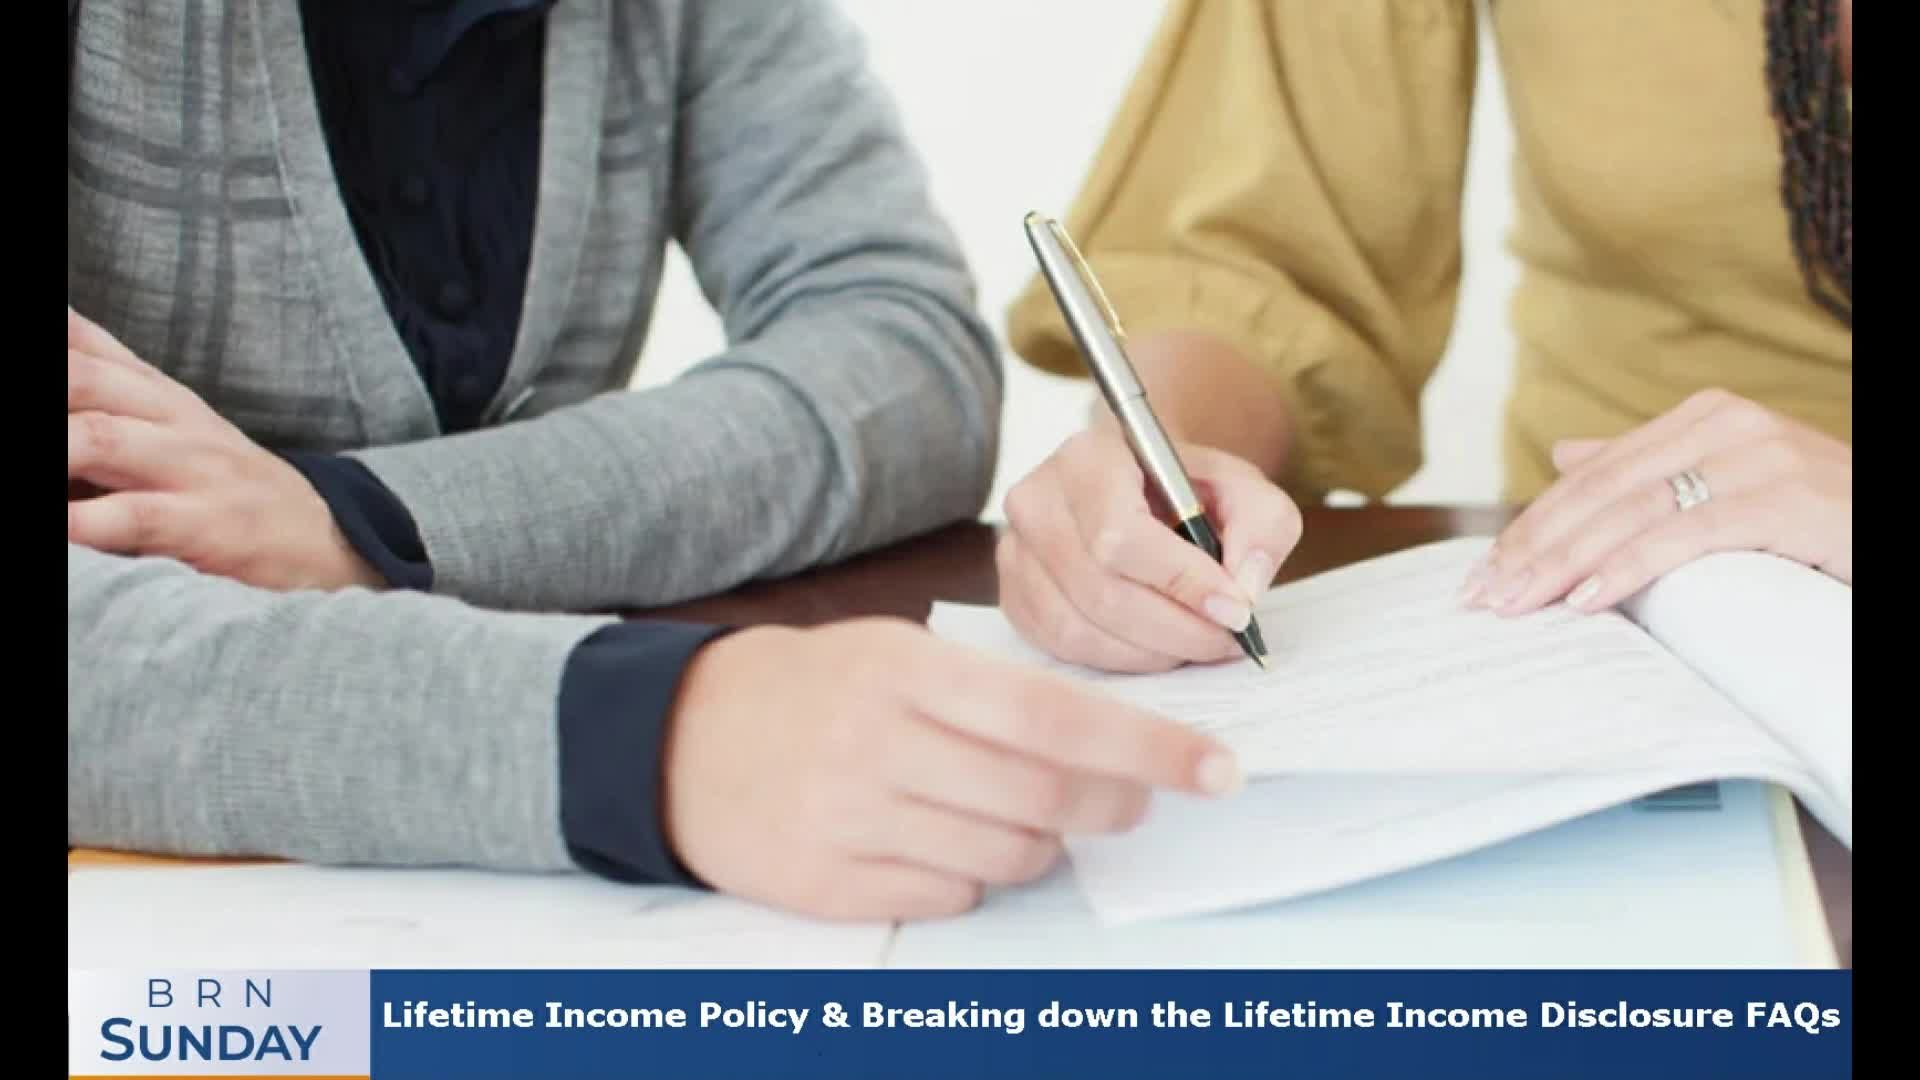 BRN Sunday   Lifetime Income Policy & Breaking down the Lifetime Income Disclosure FAQs